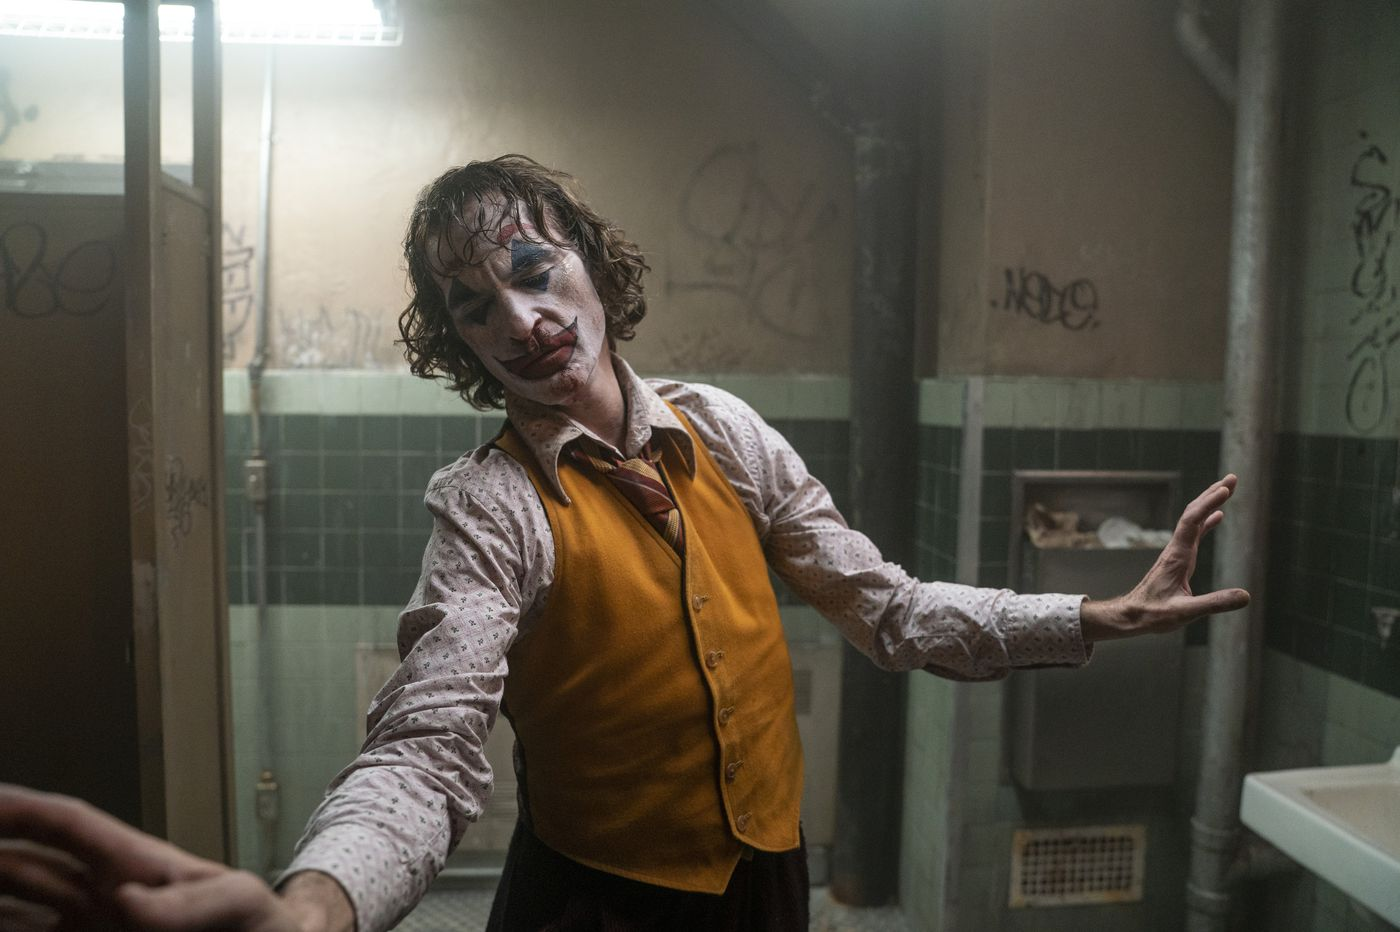 'Joker': Wild card Joaquin Phoenix dominates and distorts a creepy movie